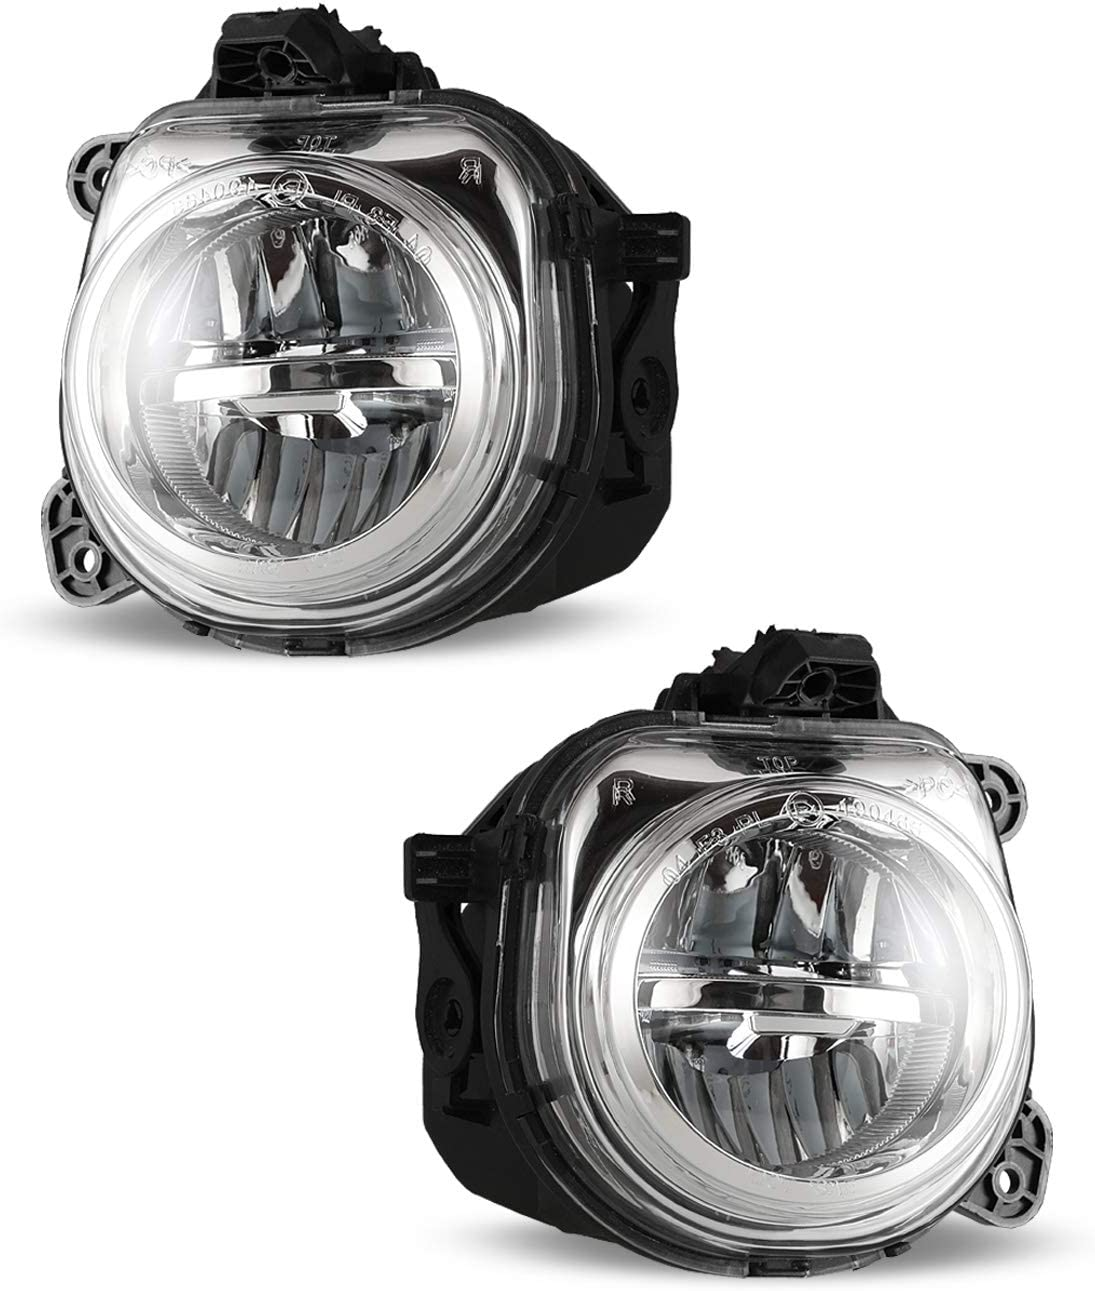 2015-2018 X5//X6 not fit night vision OEM Replacement Fog Lamps AUTOWIKI 16-18 X1 2PCS used in combination with LED head lamps only LED Fog Lights For BMW 11-17 X3 15-18 X4